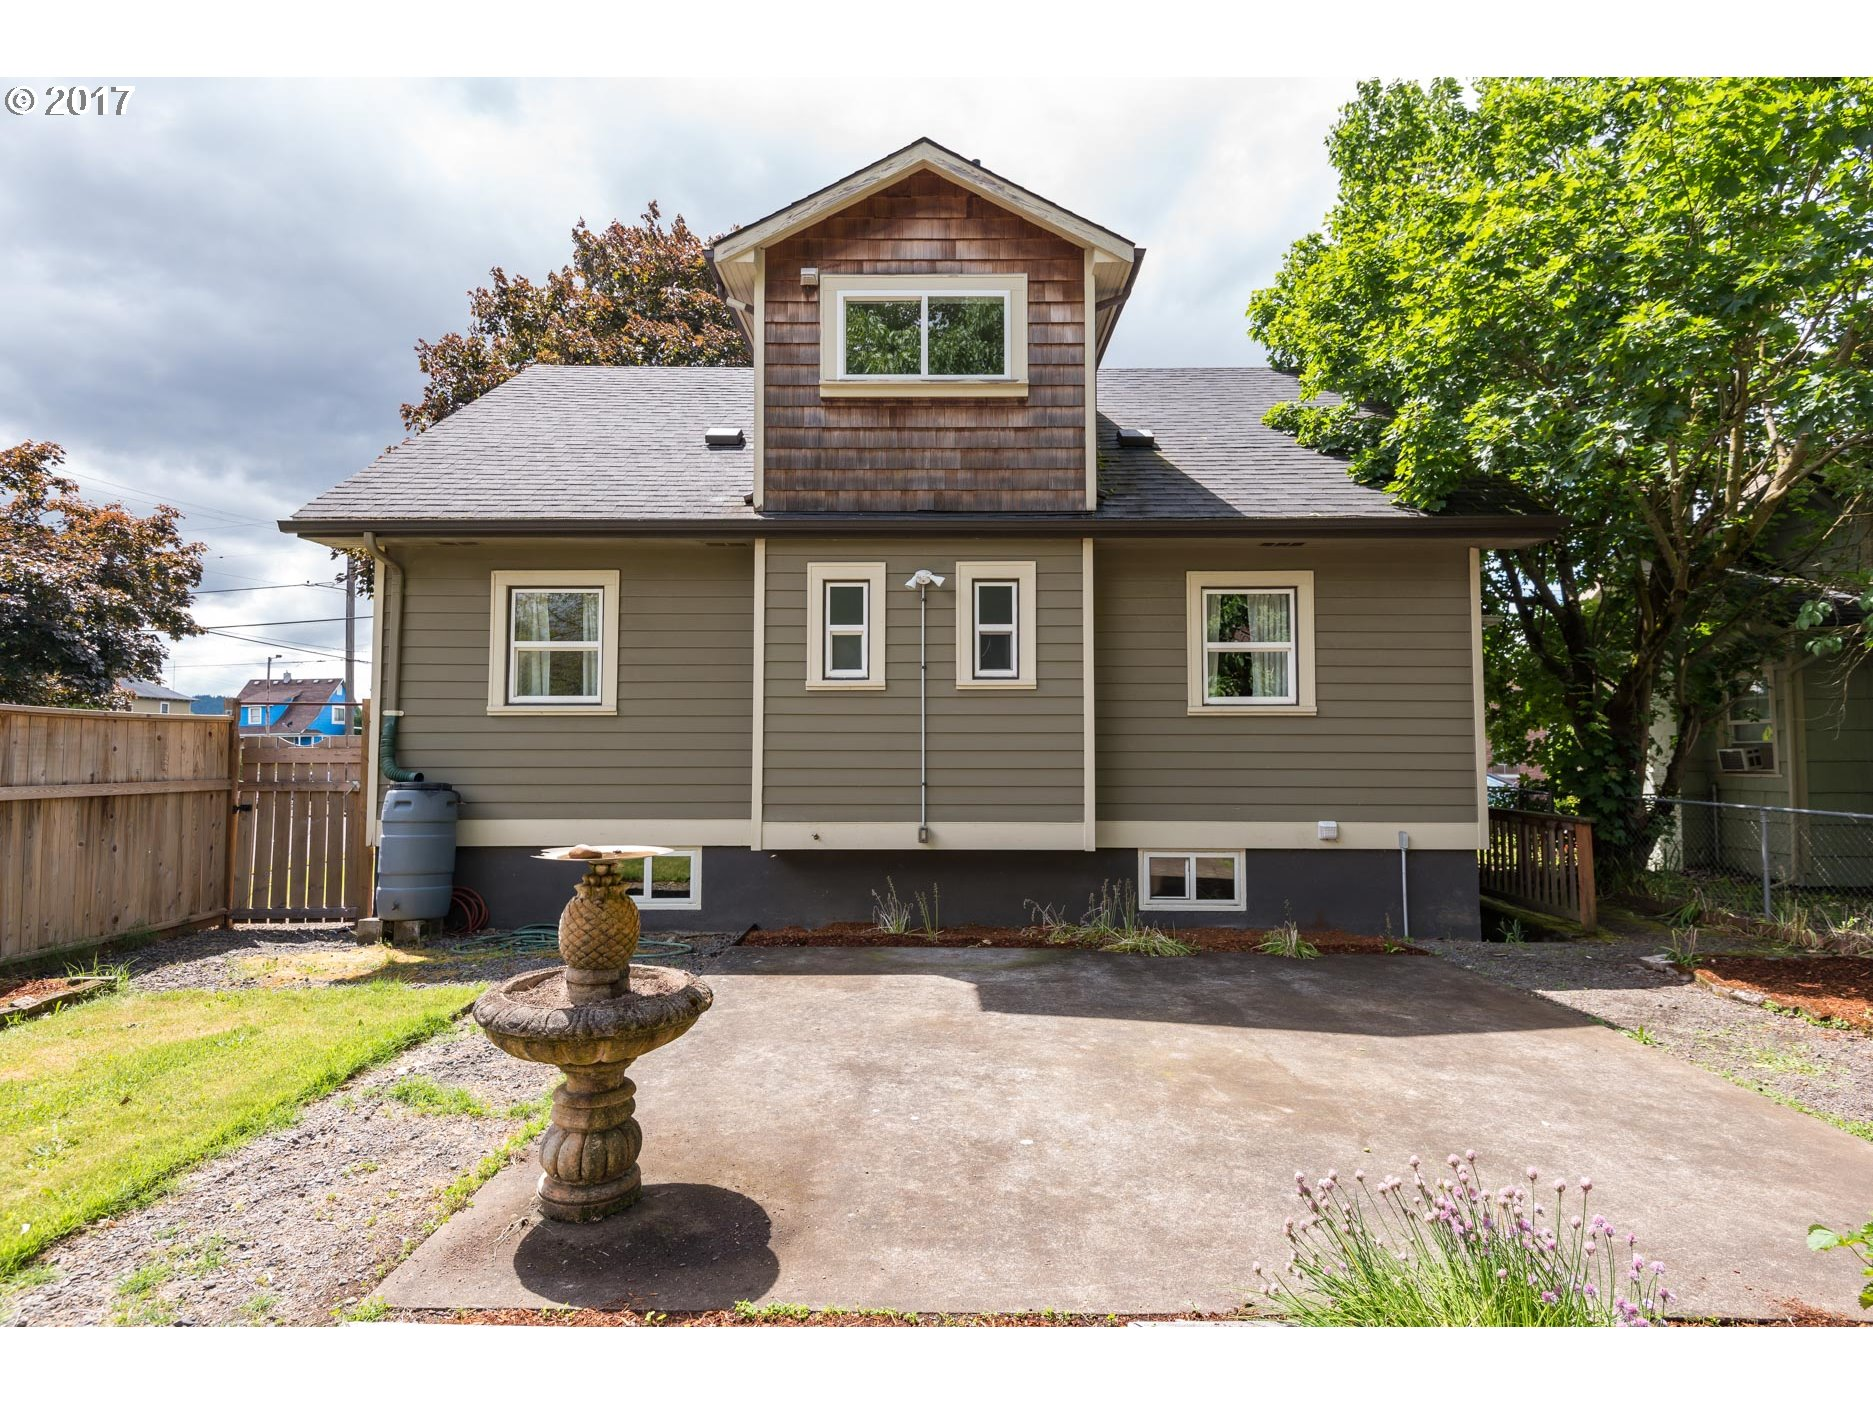 4804 NE 7TH AVE Portland, OR 97211 - MLS #: 17523997